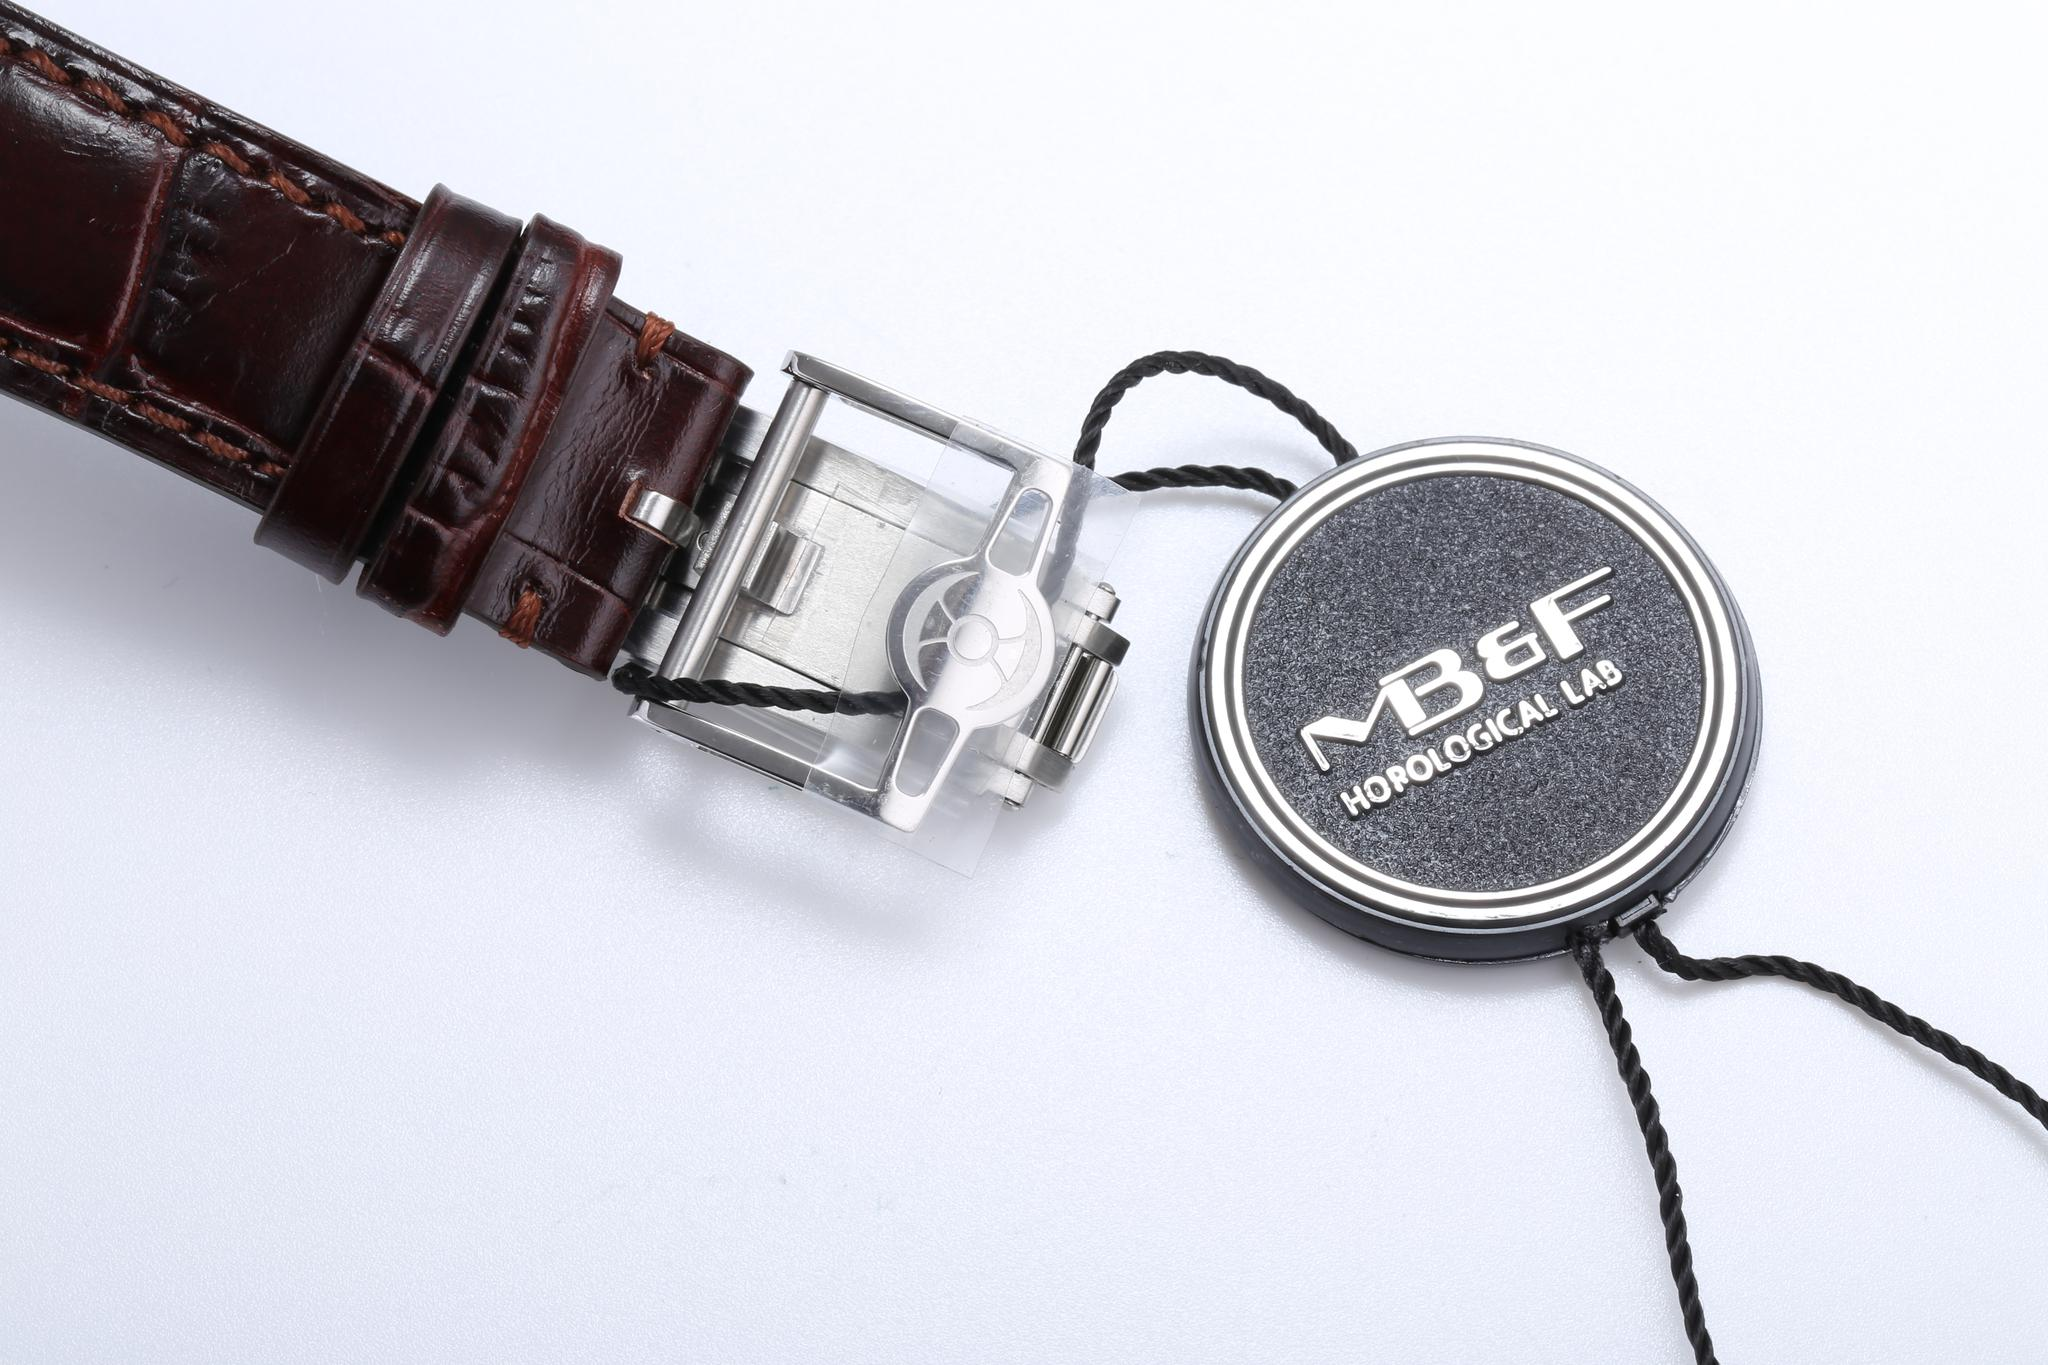 MB&F Suspension Balance Art Watch - Deducting the pinnacle of modern aesthetics!